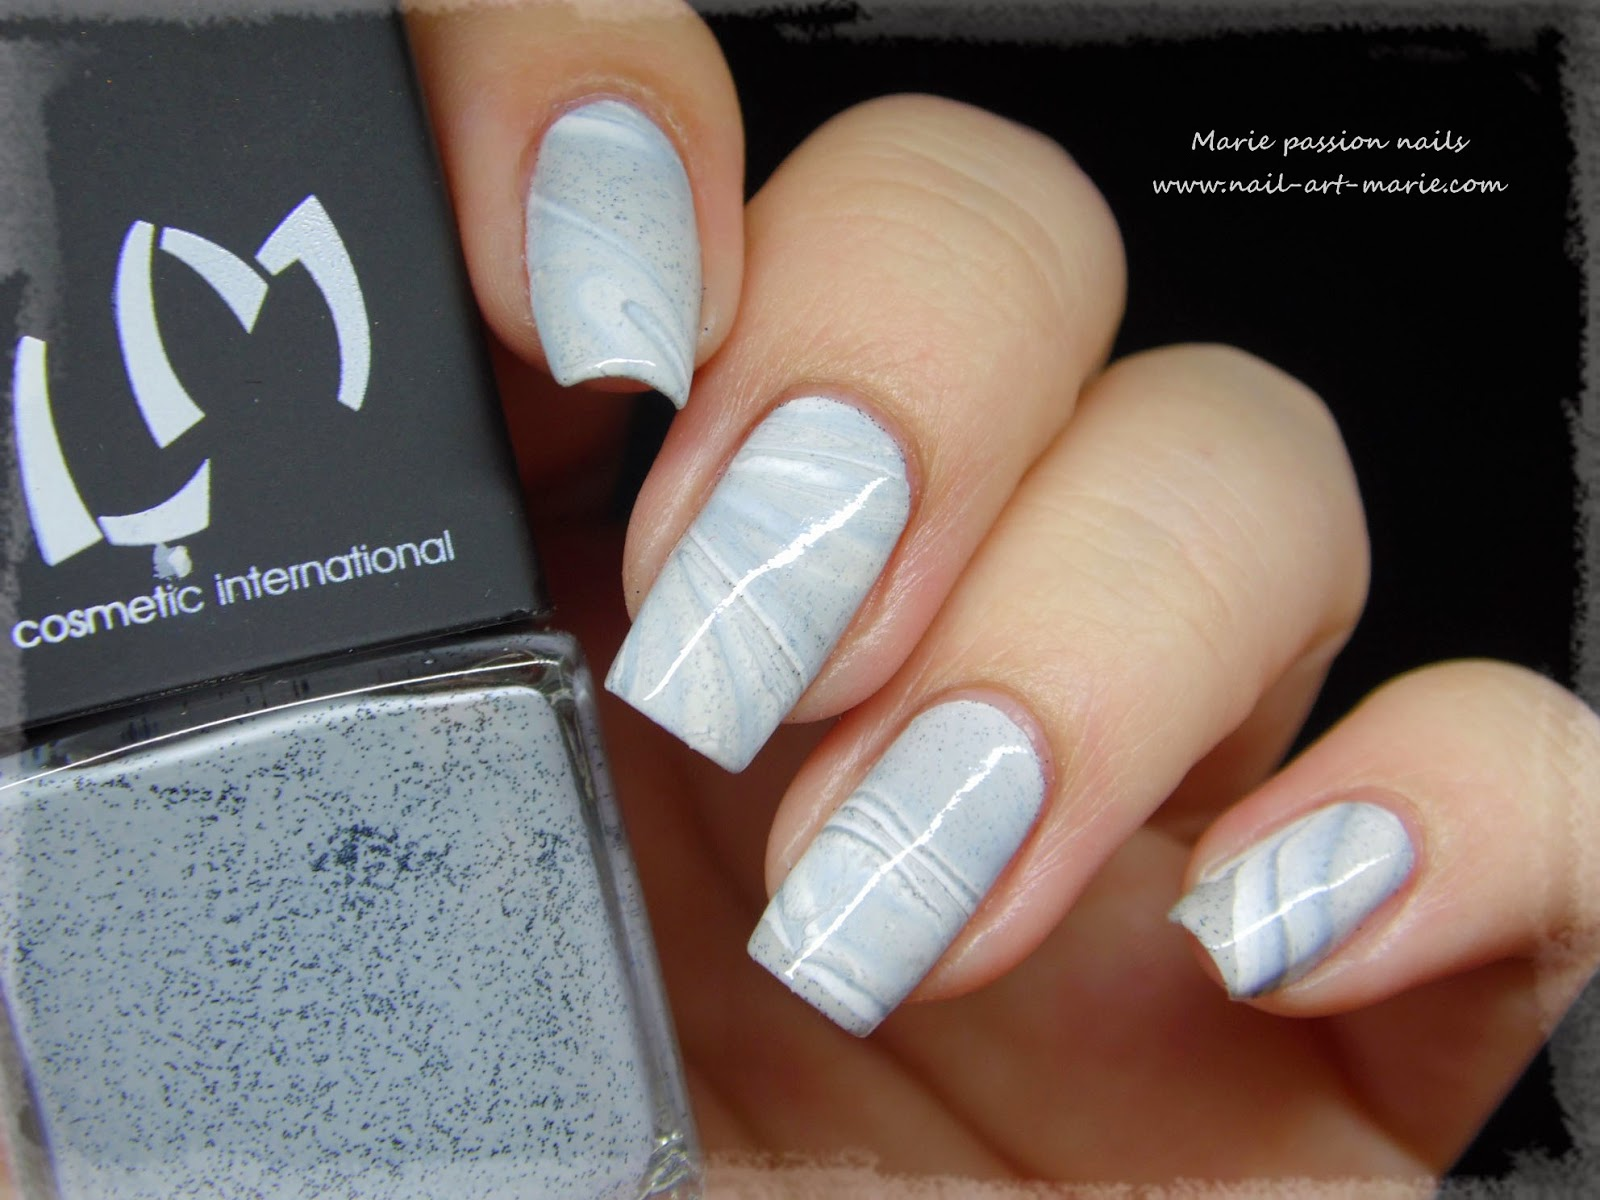 Nail Art effet Marbe au Water Marble1